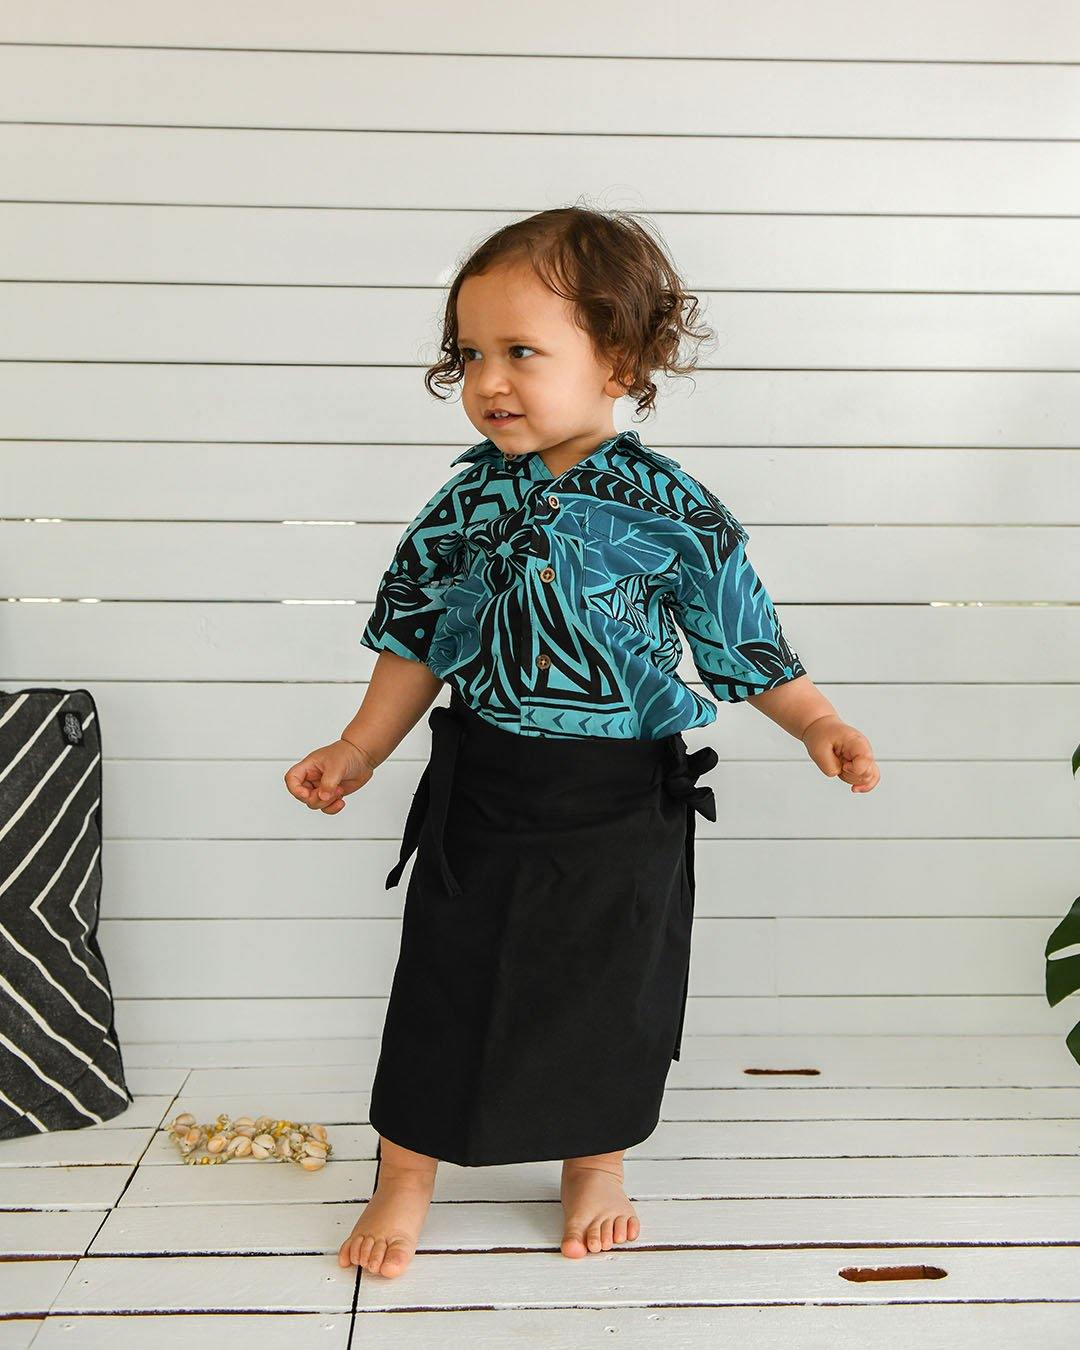 Kanoa Baby Short Sleeve Shirt - Moana Blue